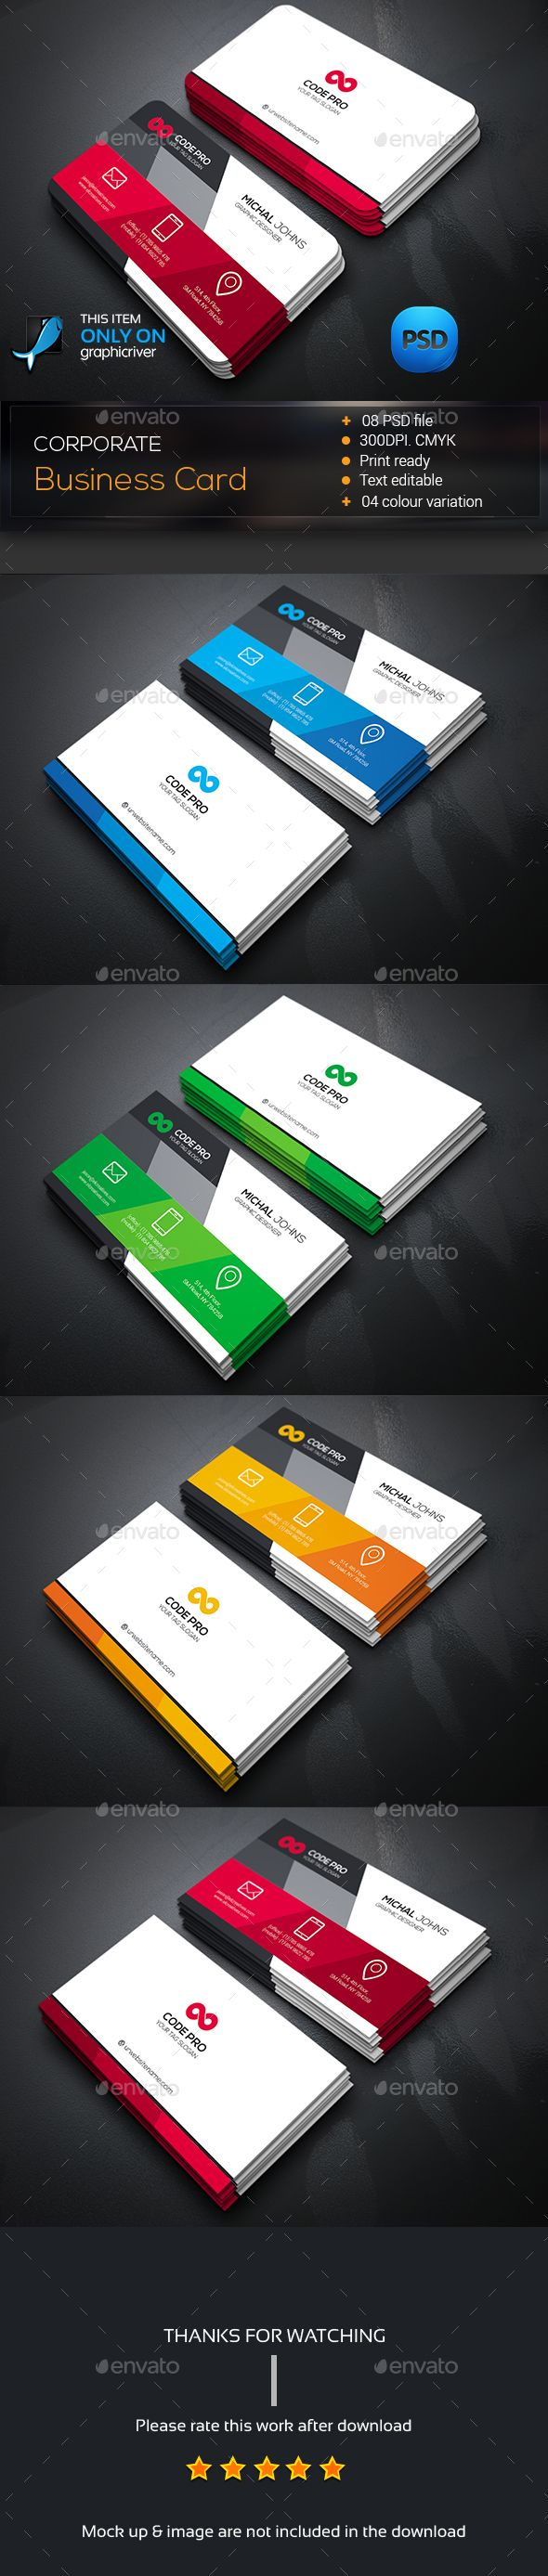 Business Card Template PSD #design Download: http://graphicriver ...